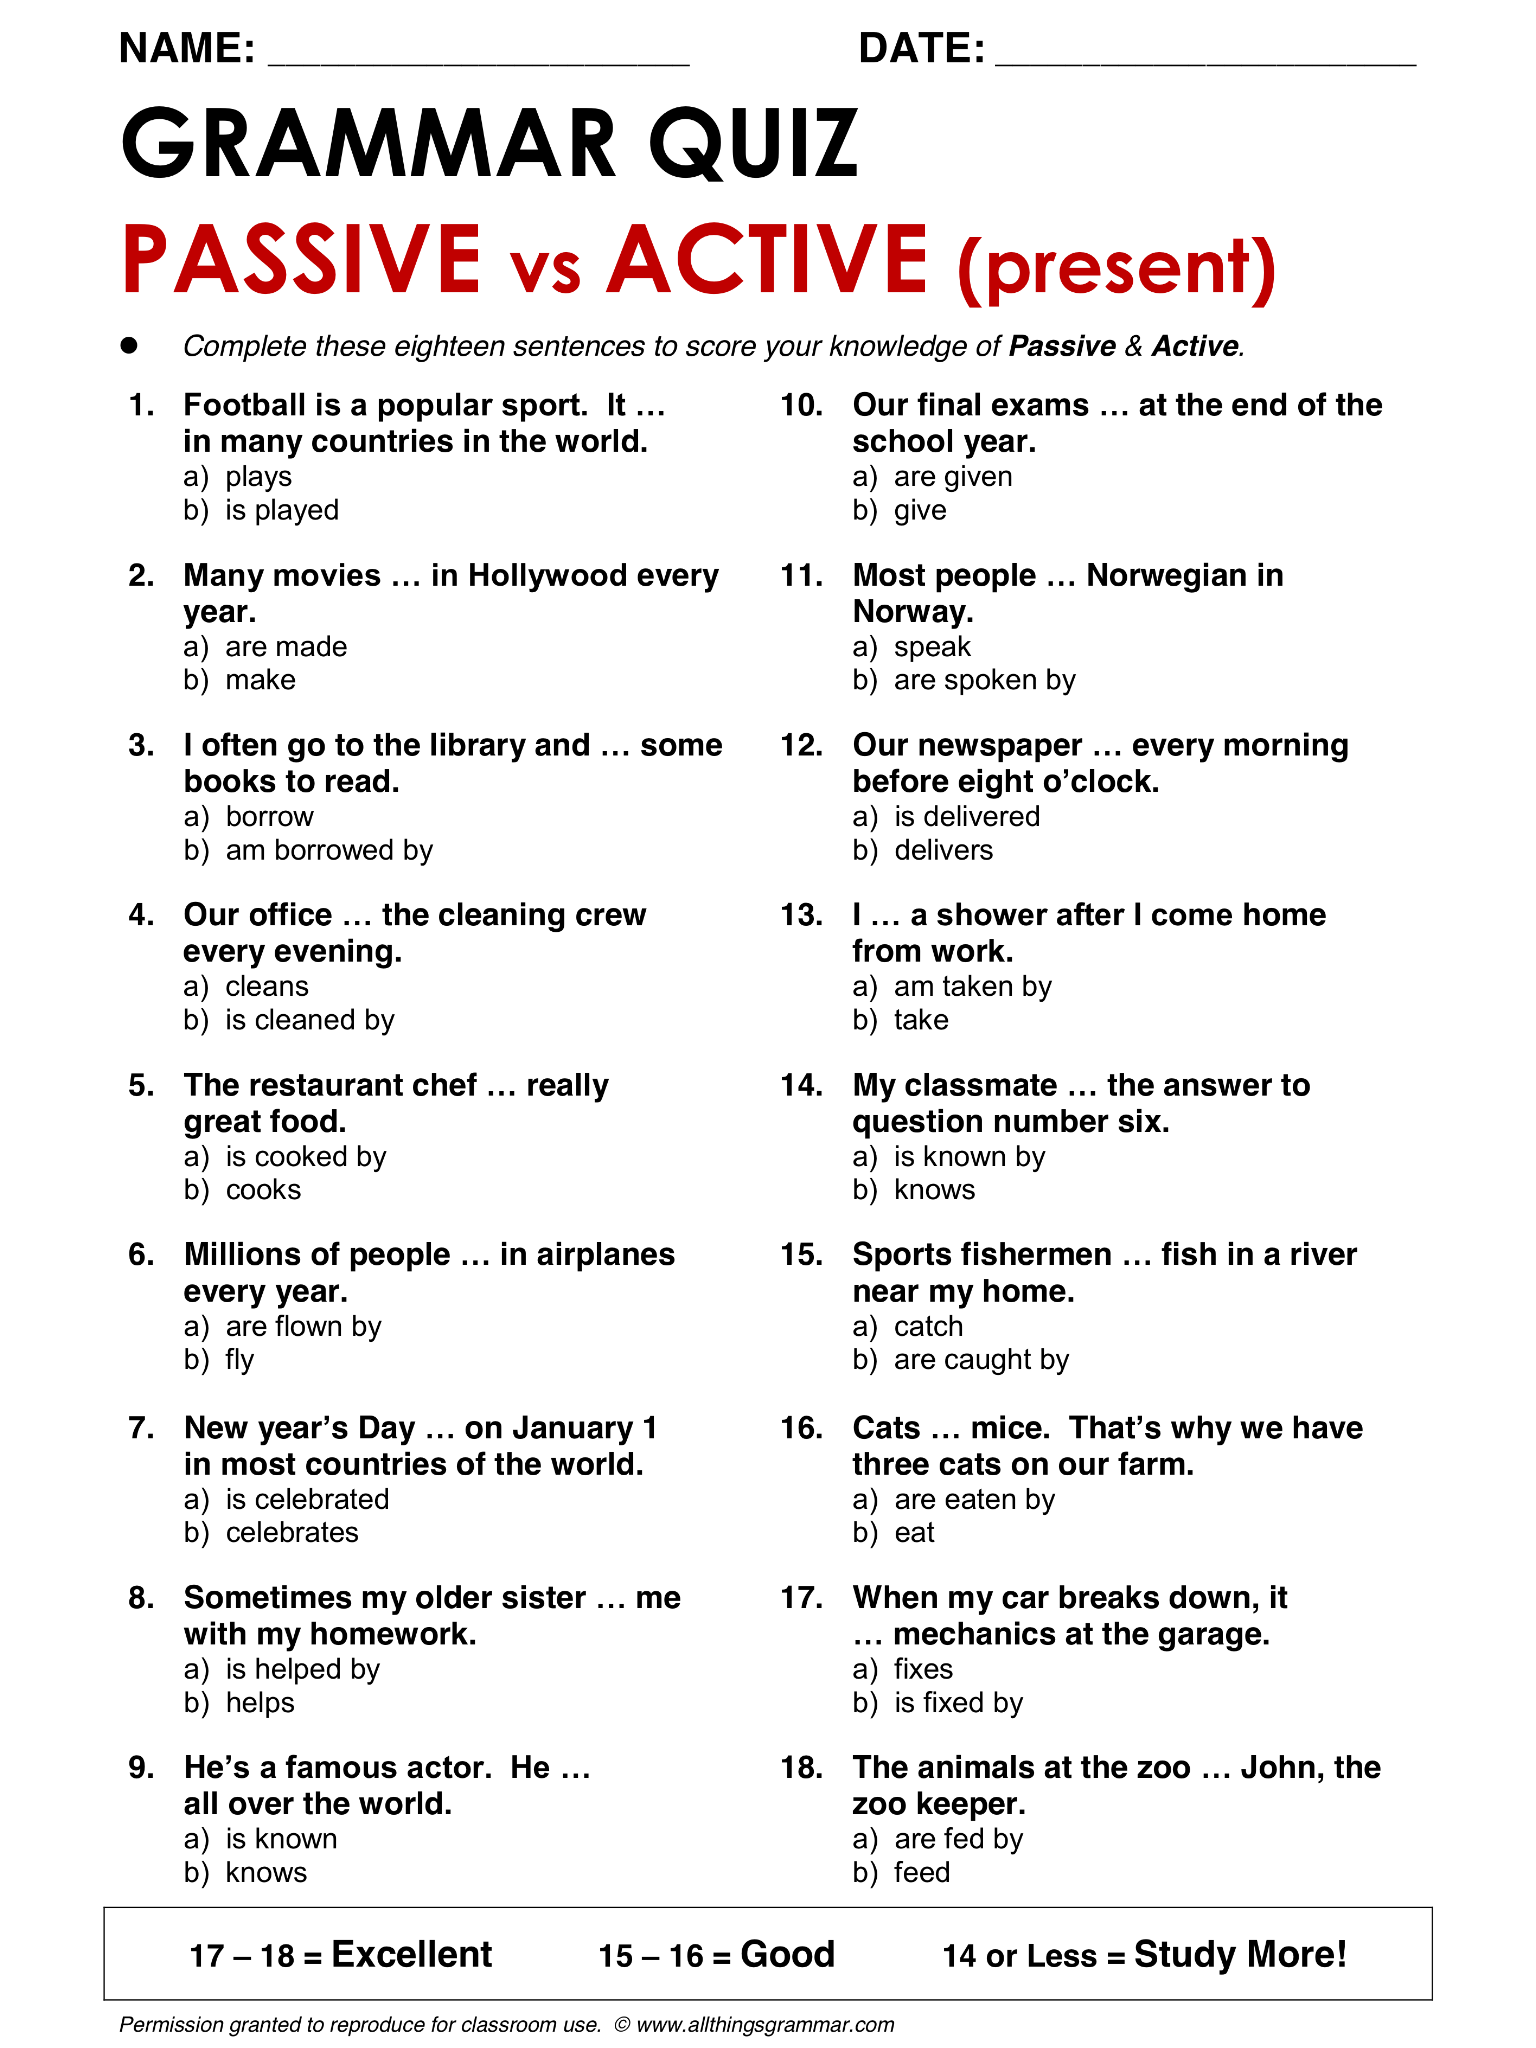 Active And Passive Voice Worksheet With Answers Image Search ...